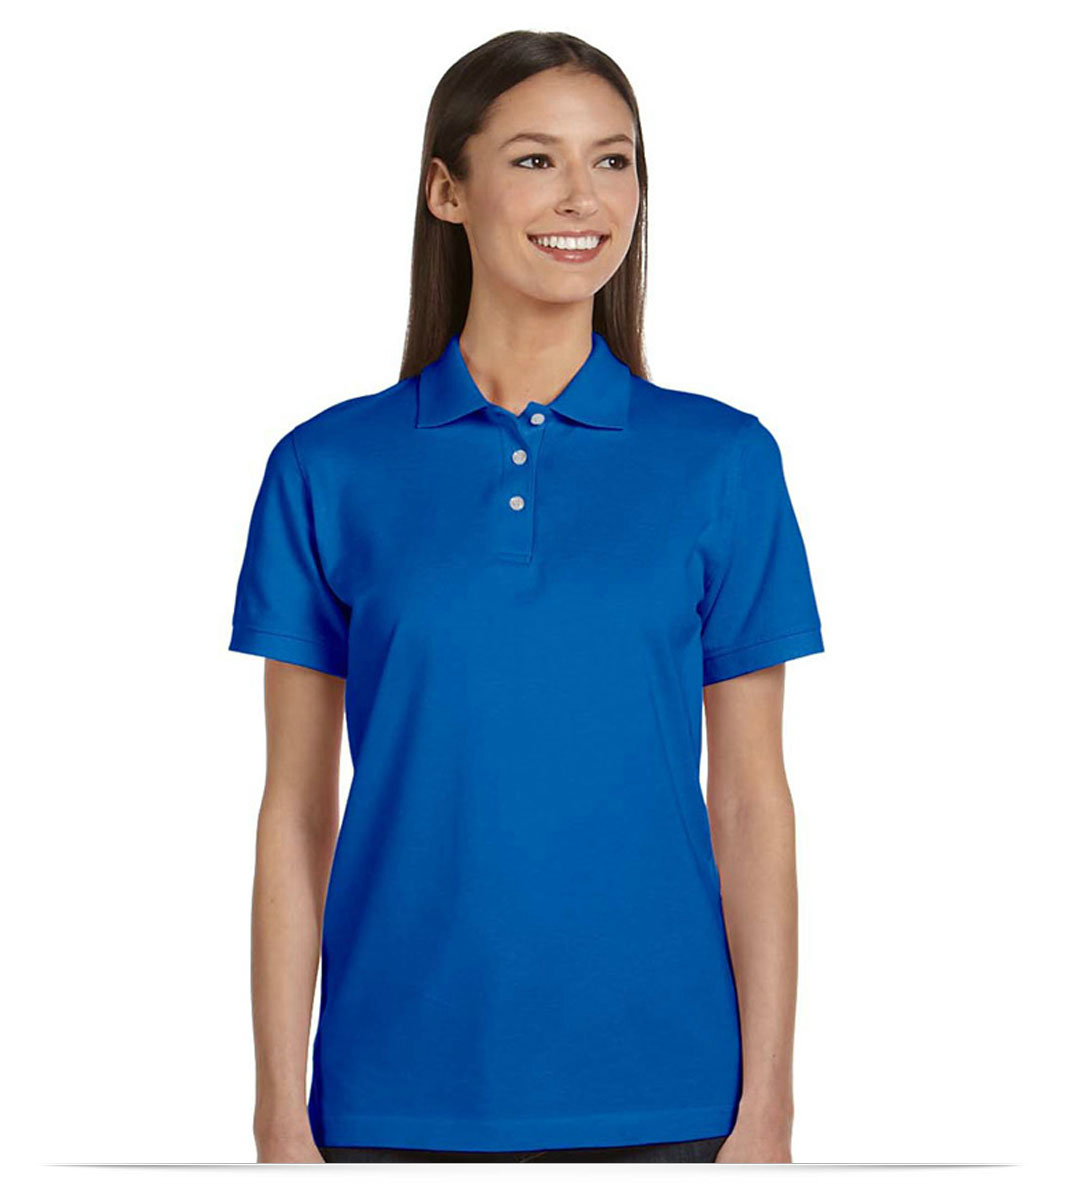 Shop for and buy girls polo shirts online at Macy's. Find girls polo shirts at Macy's.